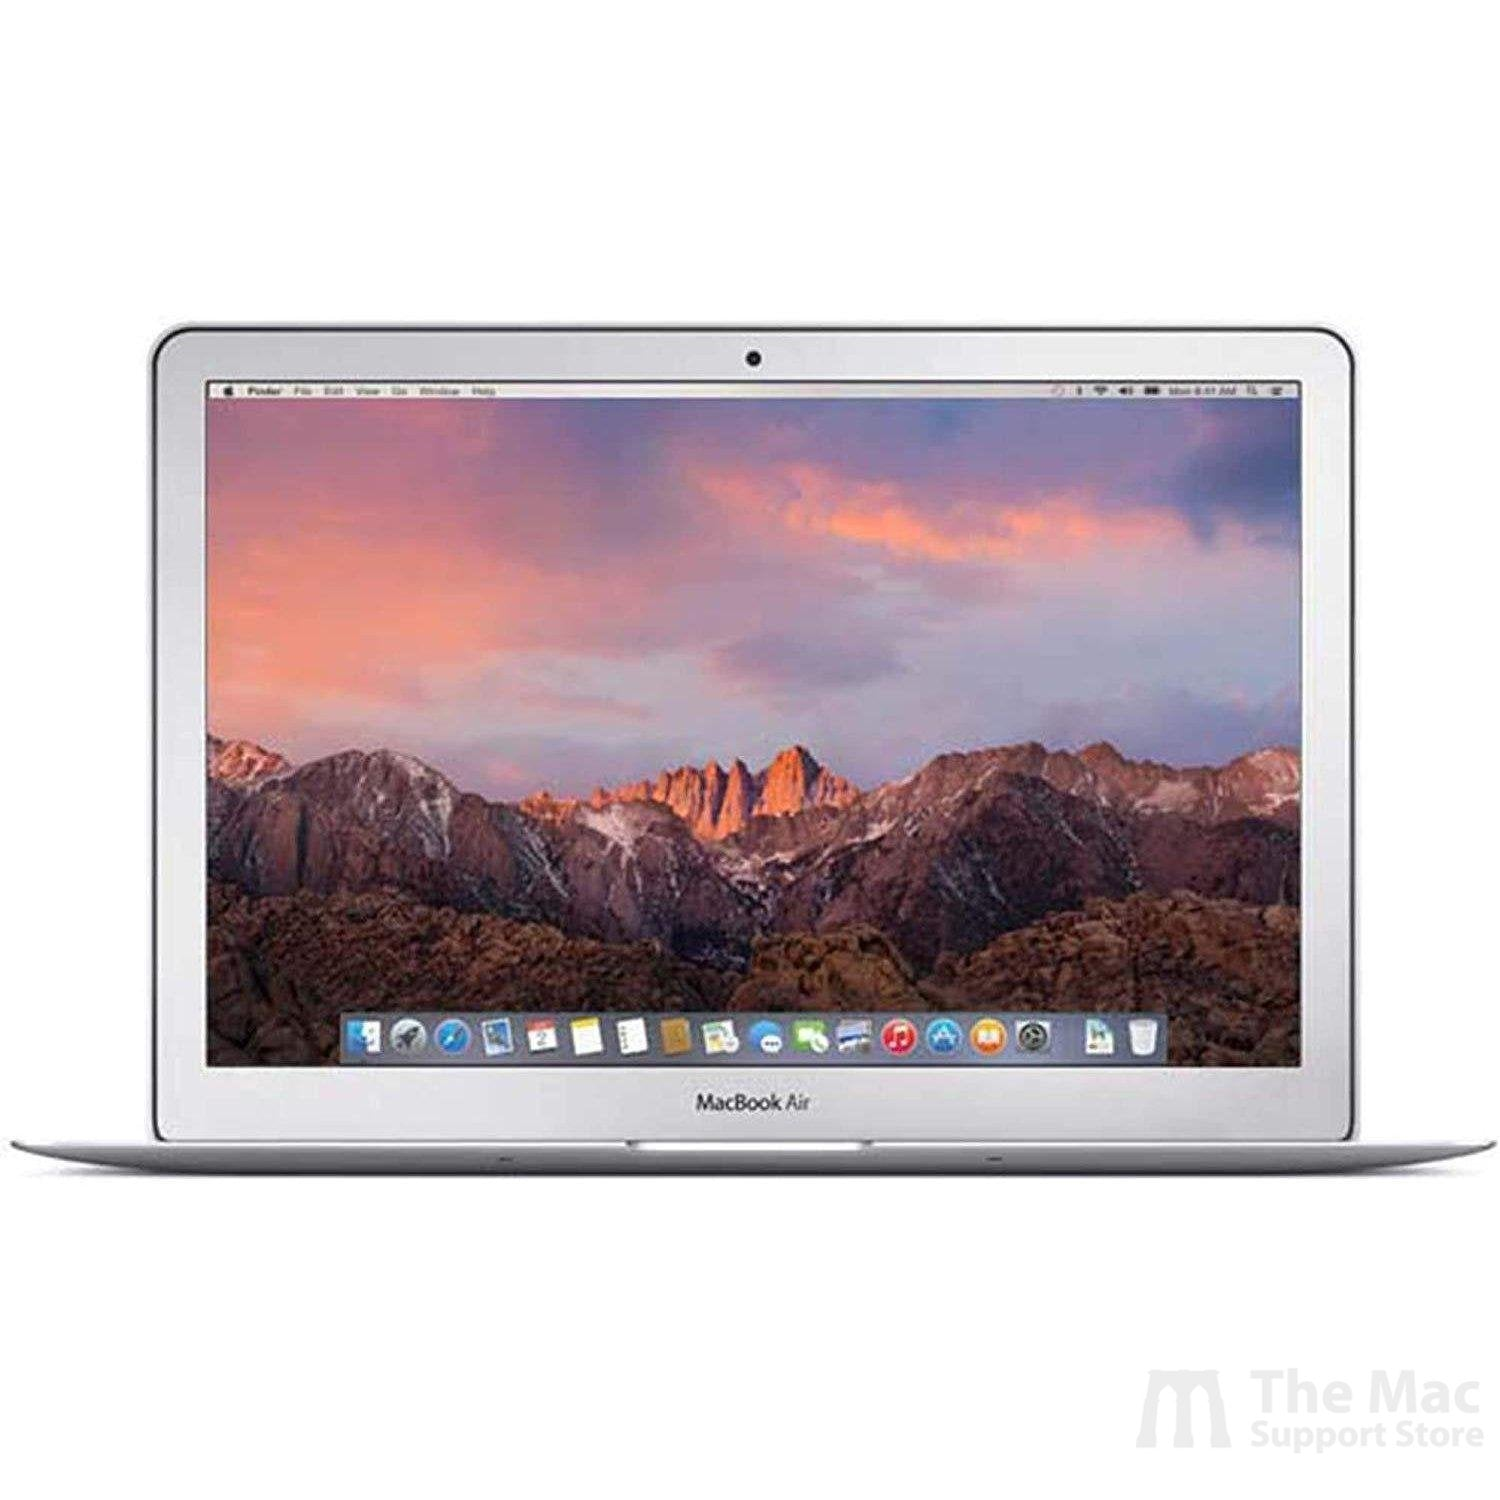 MacBook Air (13-inch, Early 2015)-The Mac Support Store